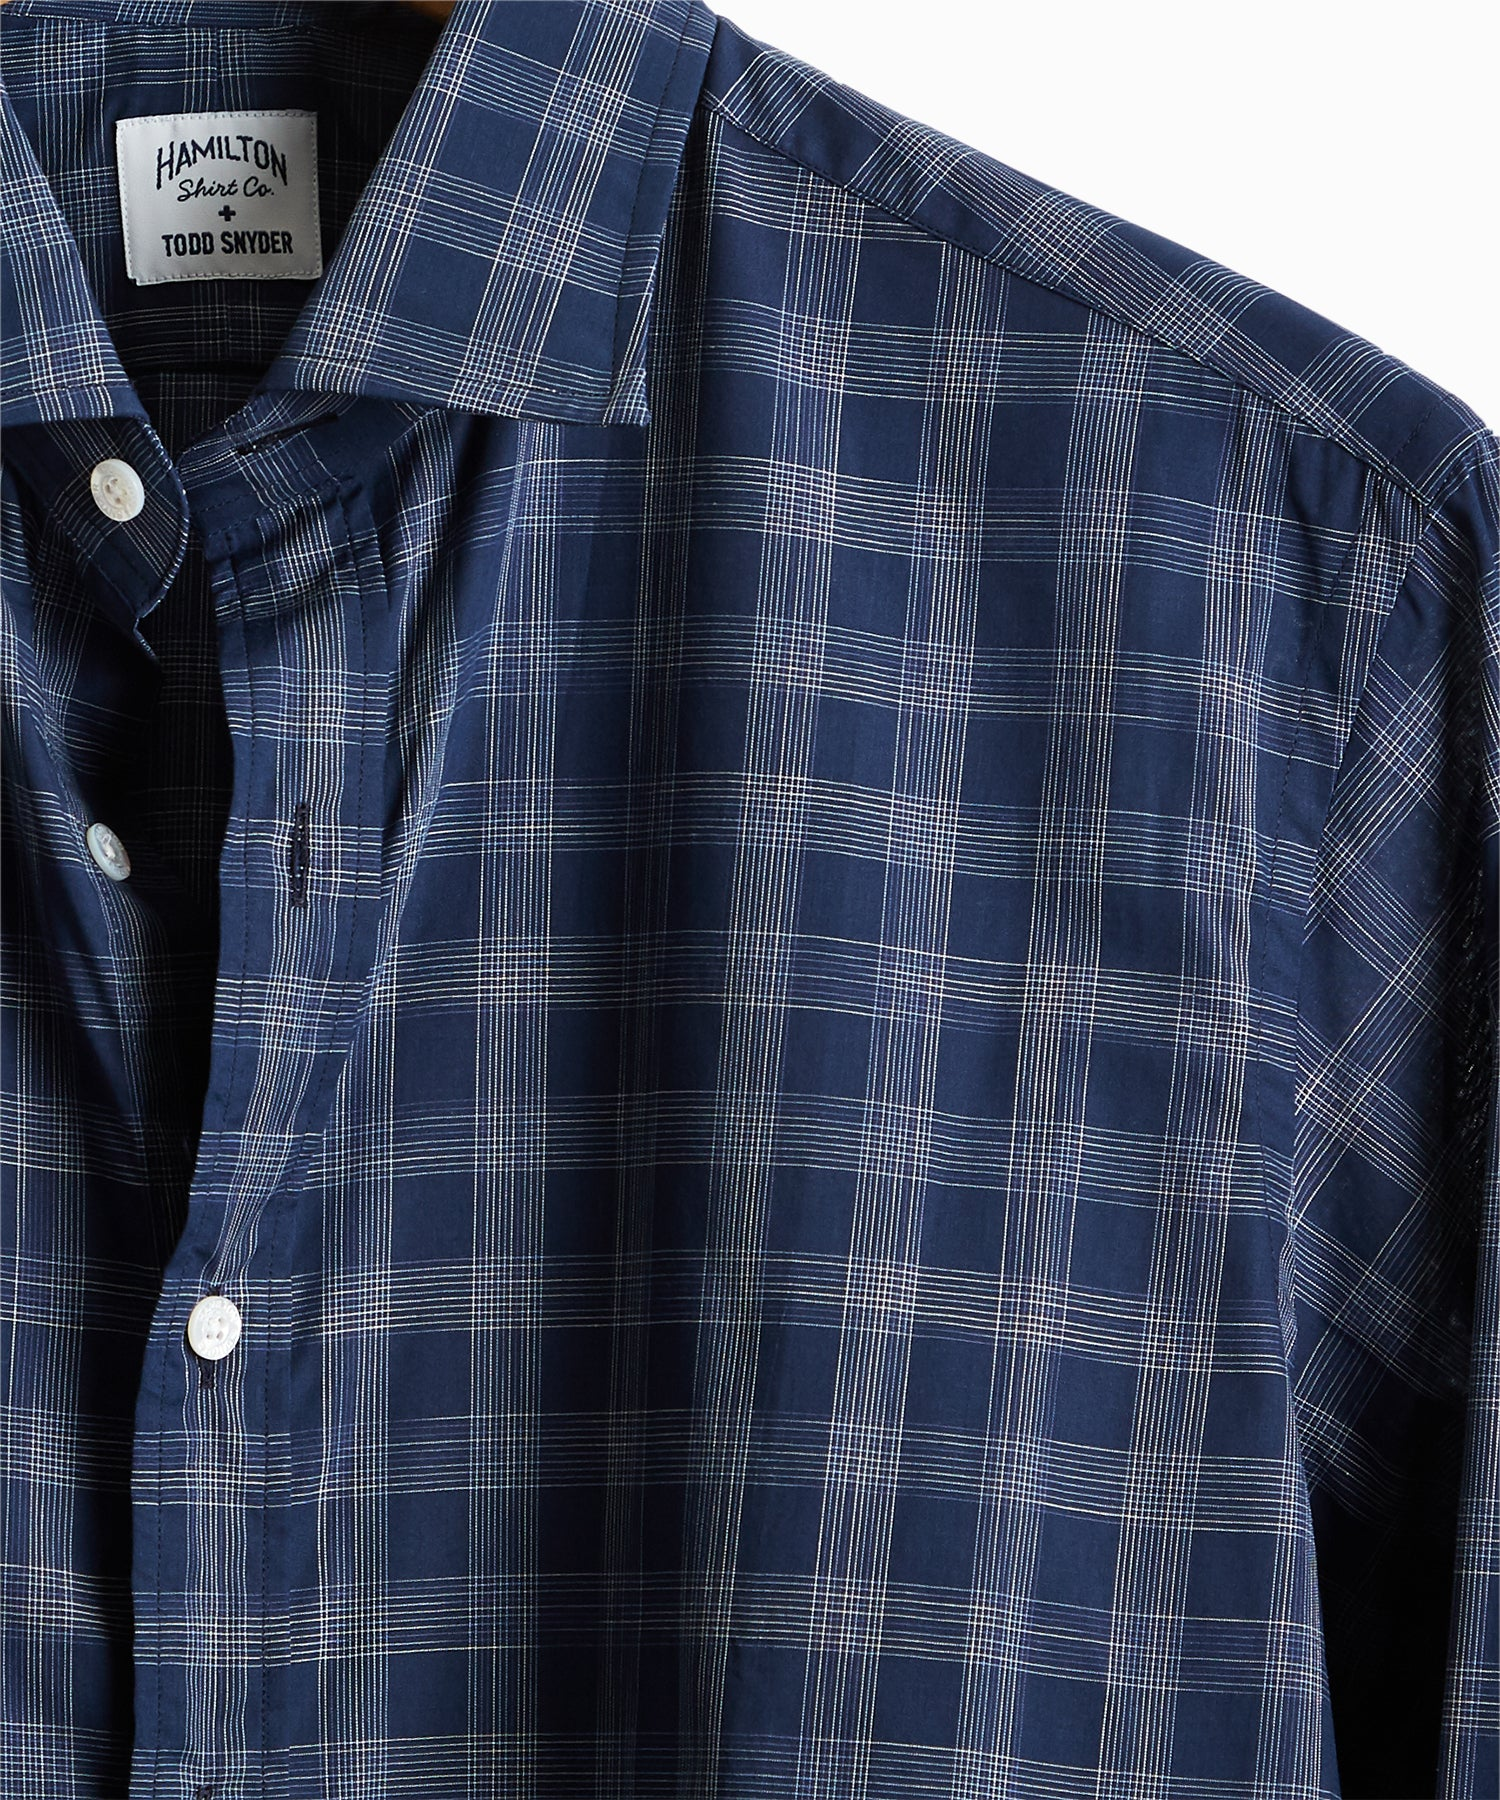 Made in USA Hamilton + Todd Snyder Check Dress Shirt